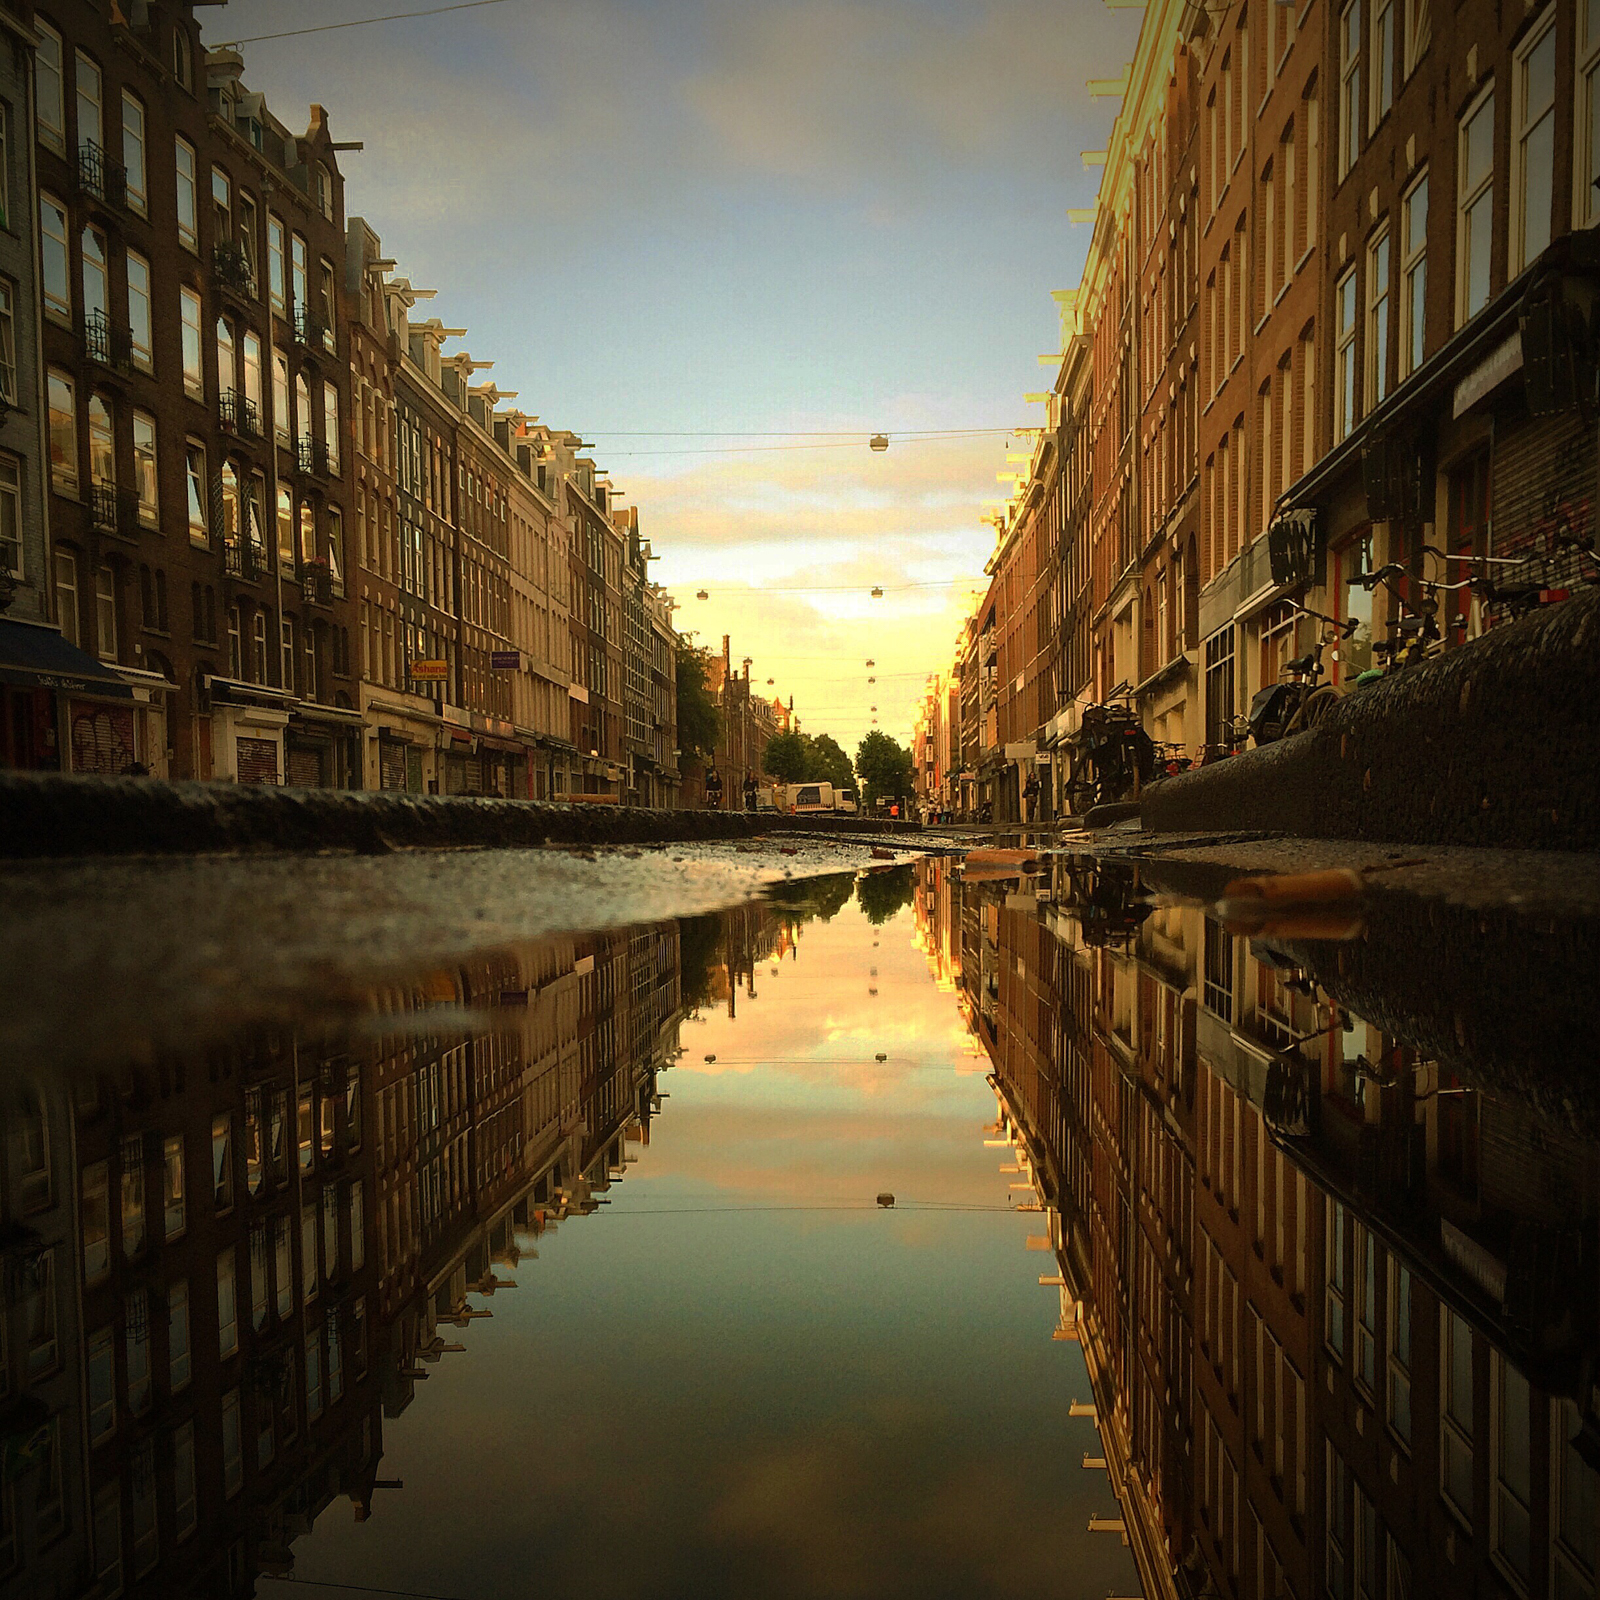 iphone images | amsterdam